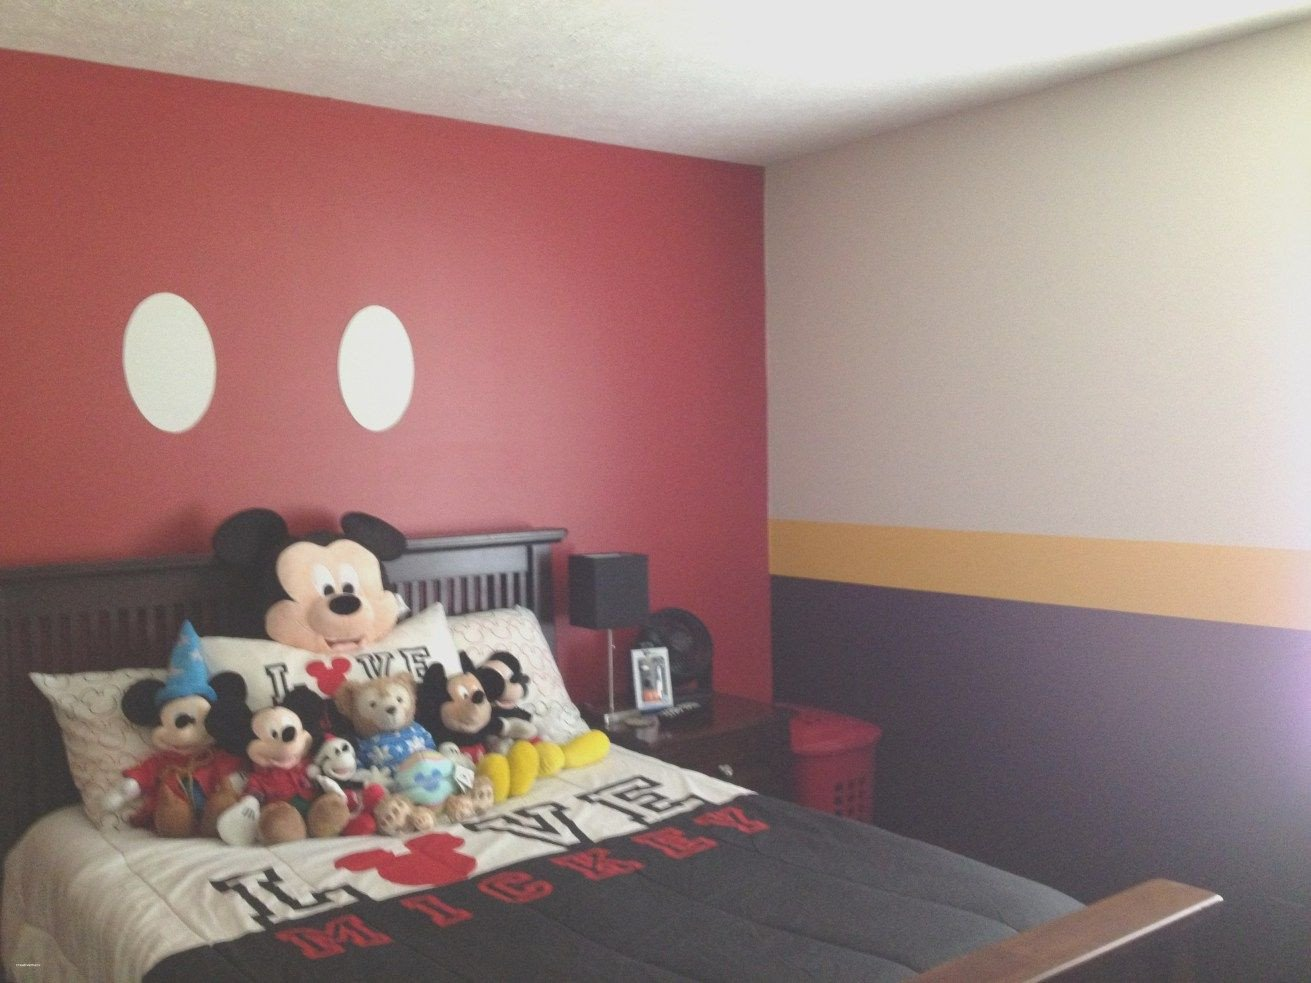 Mickey Mouse Bedroom Decorations Elegant Disney House Decorations Ideas Mickey Mouse Lovely